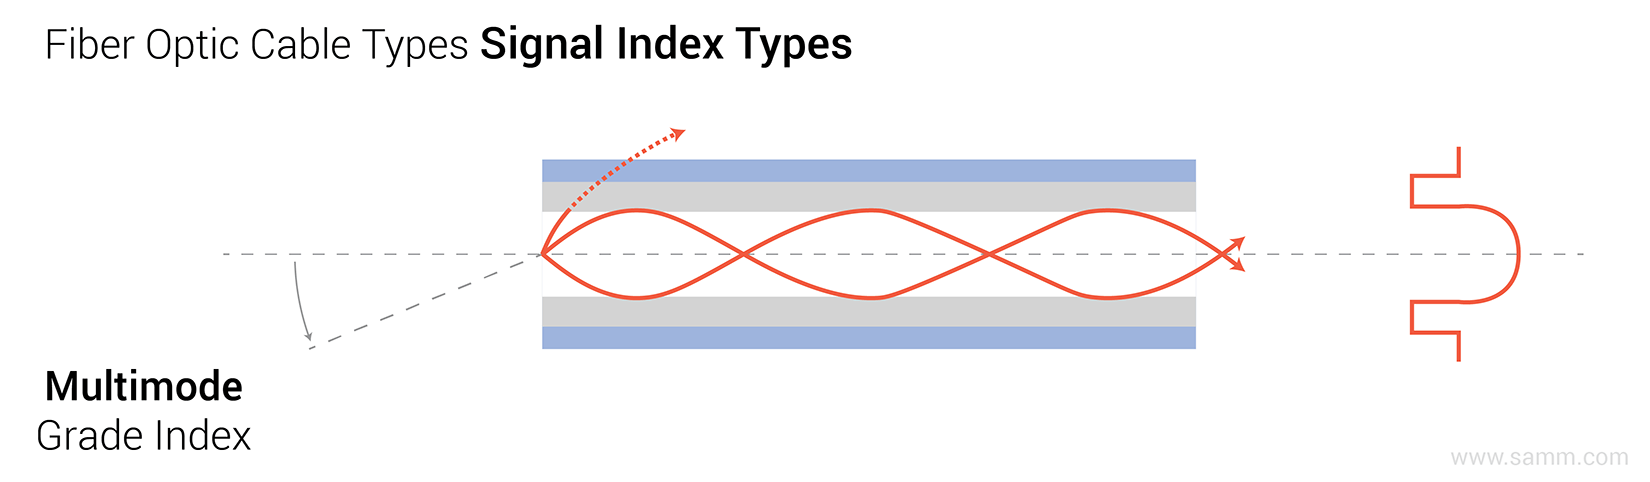 fiber-optic-cable-types-signal-indexing